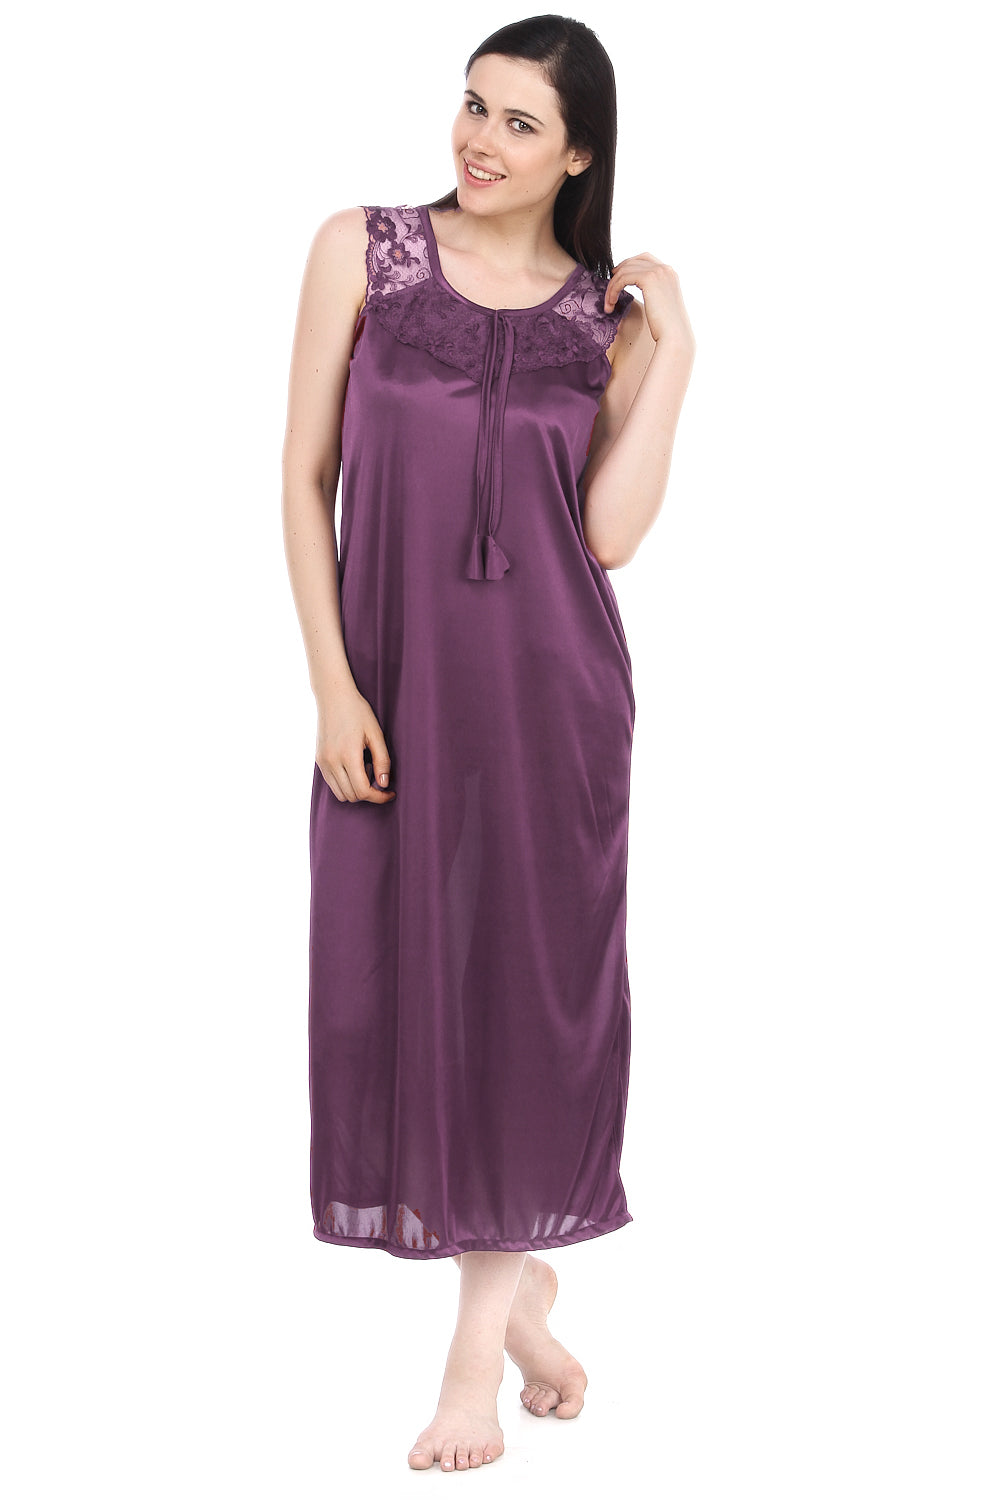 Fasense Satin Solid  Long Nighty  DP110 A